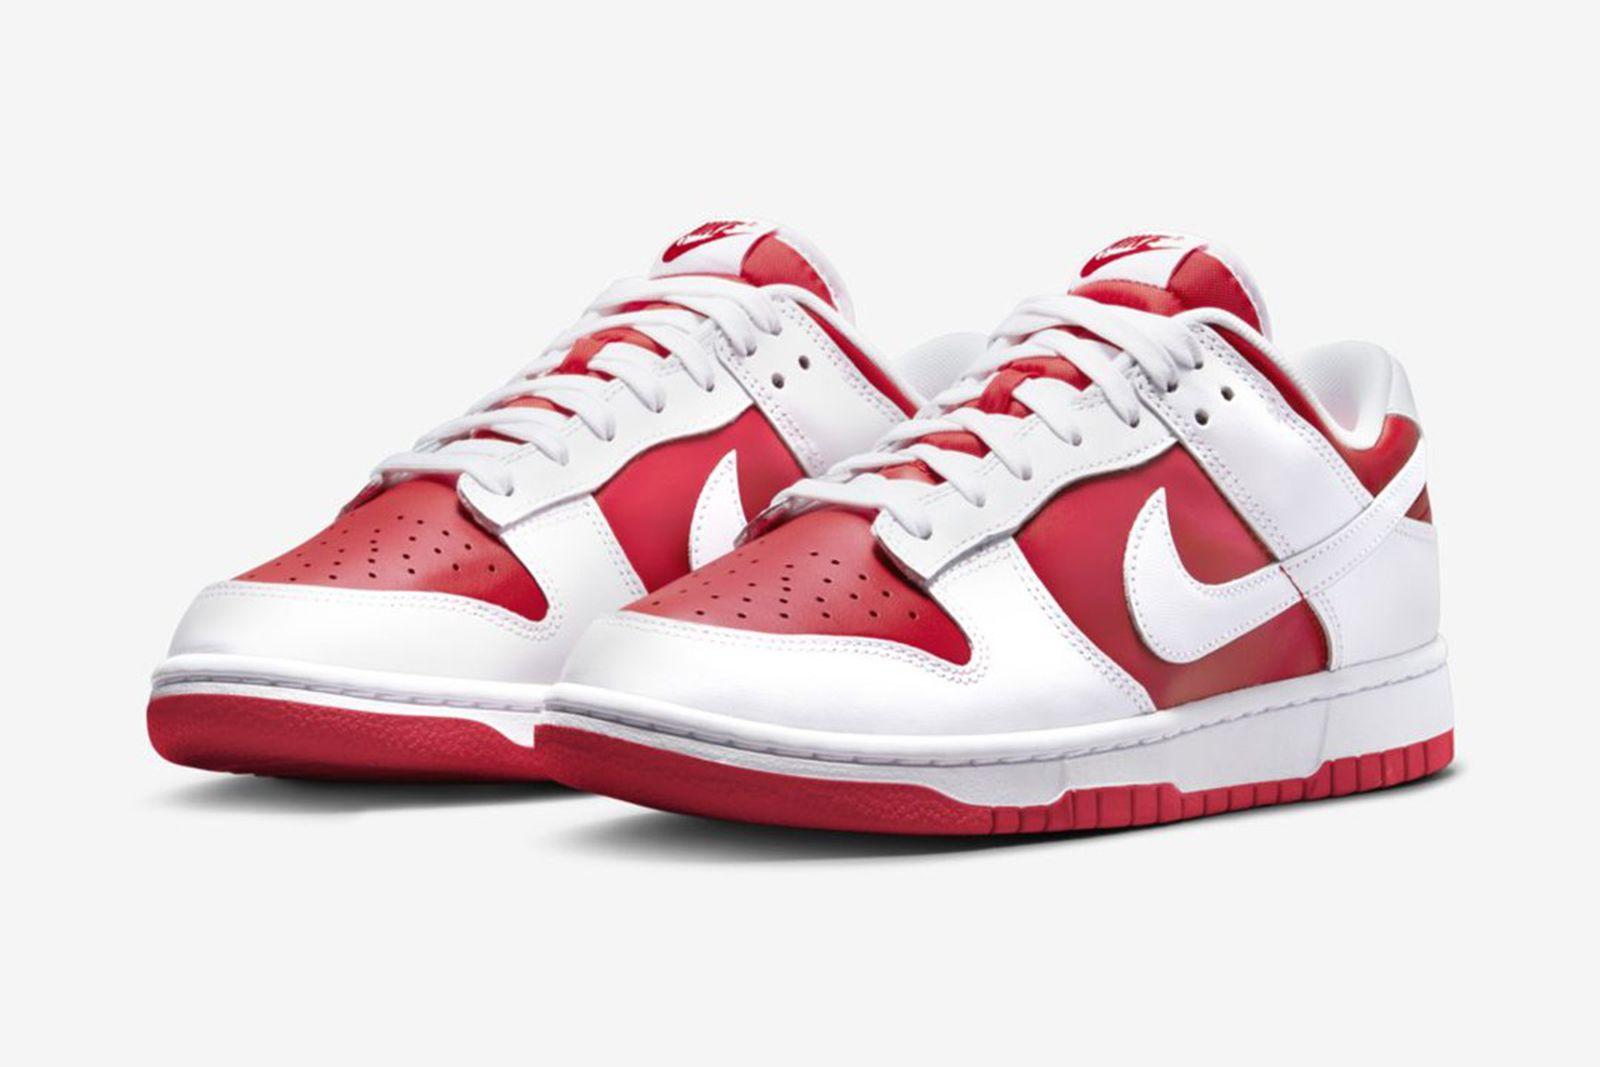 nike-dunk-low-upcoming-2021-releases-02